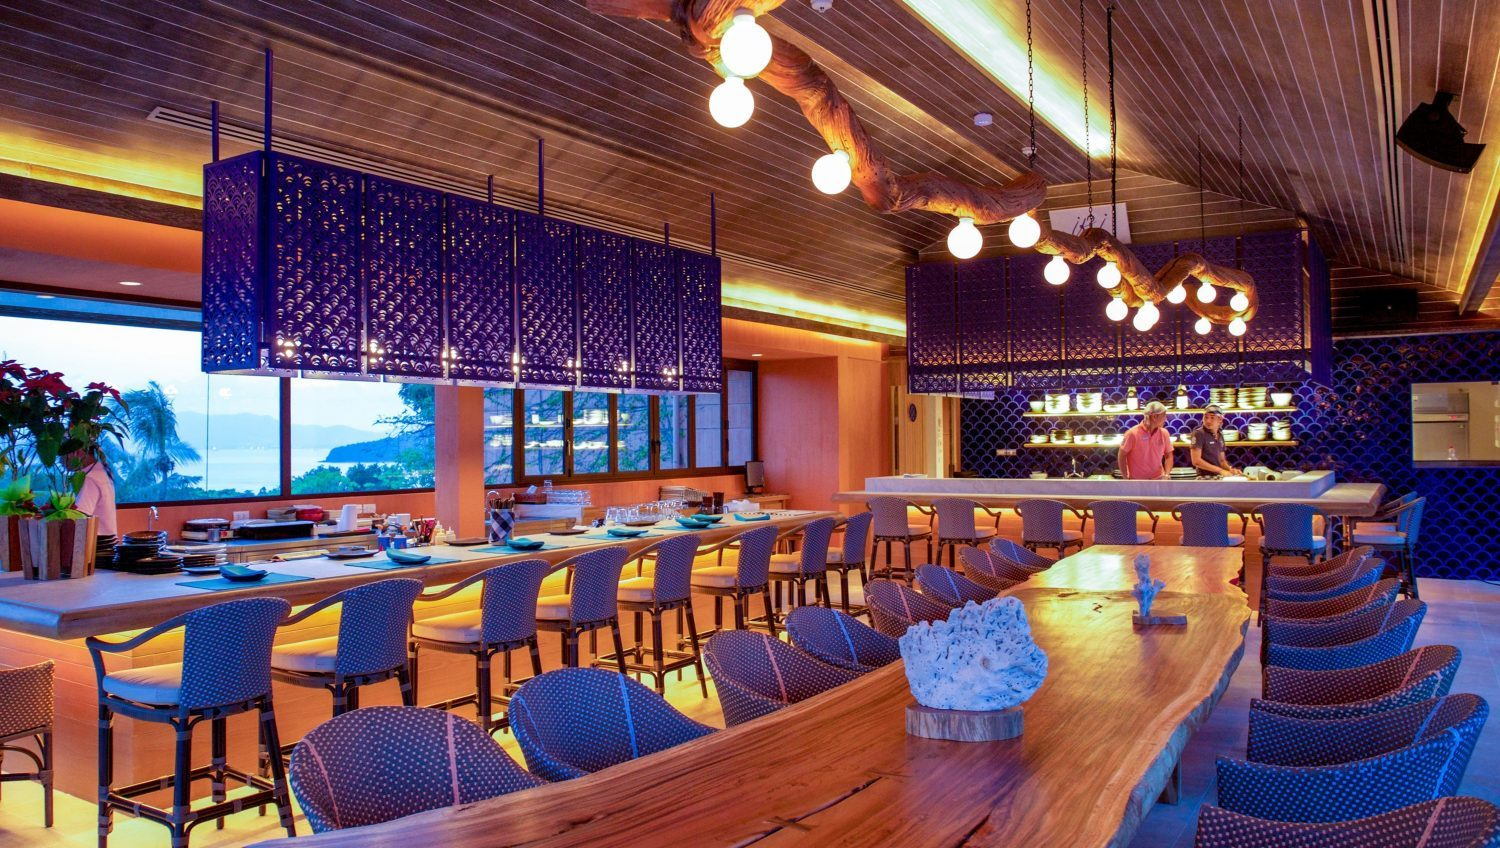 1-Baba-IKI-Luxury-Japanese-Cuisine-in-Phuket1